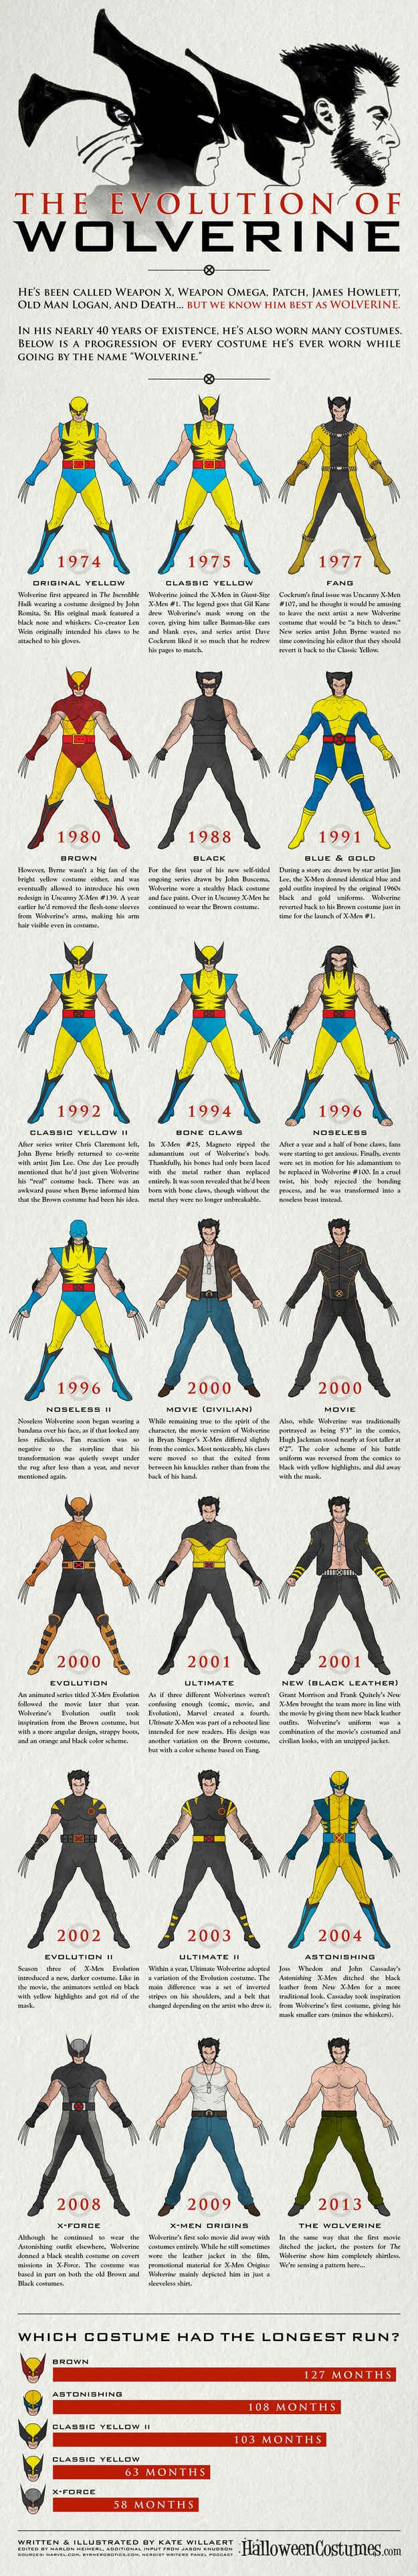 The Evolution Of Wolverine: An Infographic - BuzzFeed Mobile